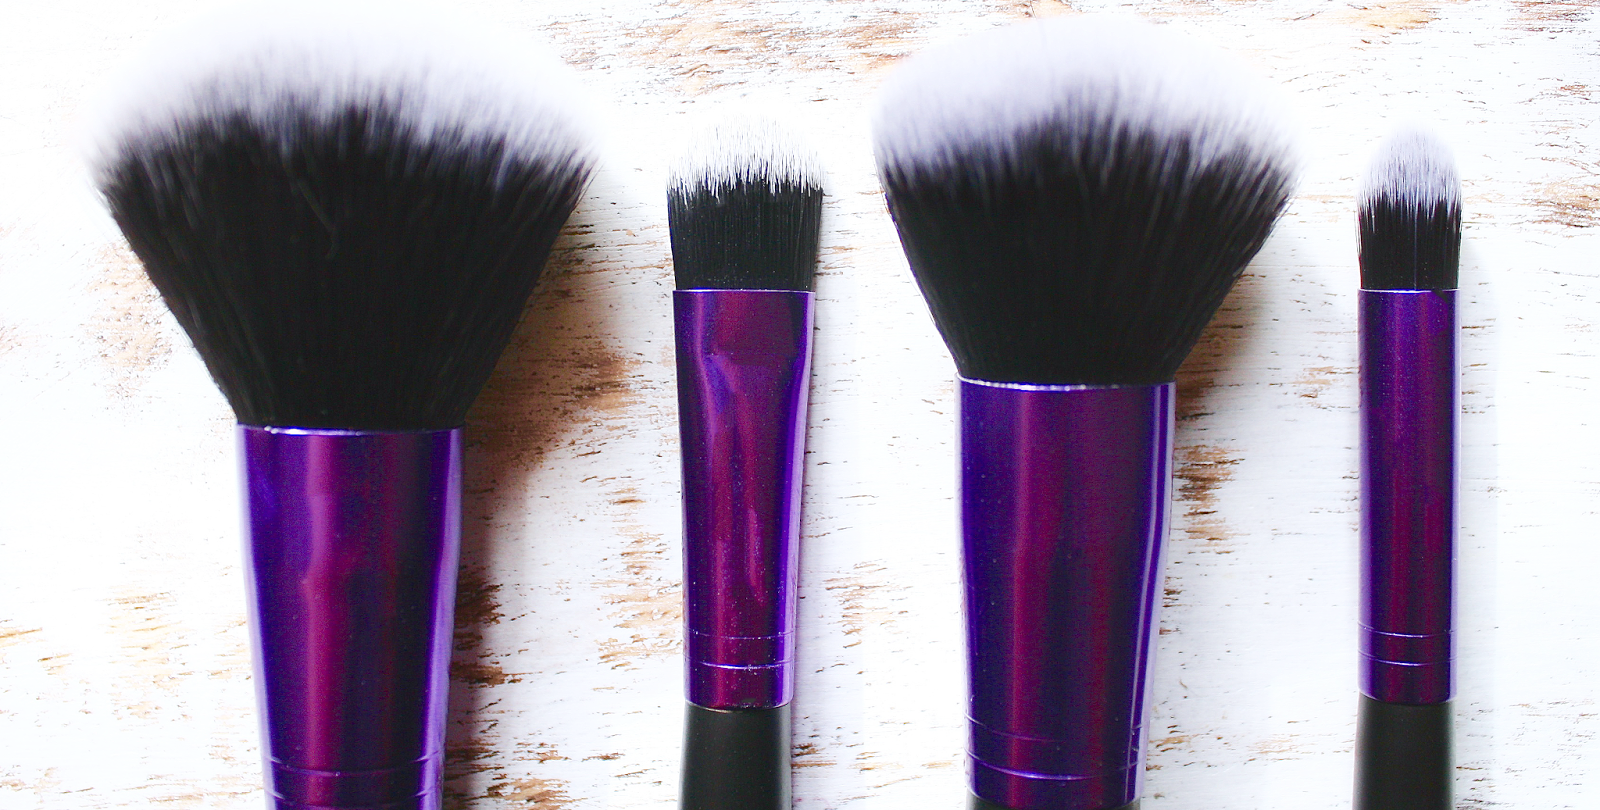 BrushWorks Mini Brush Set Review